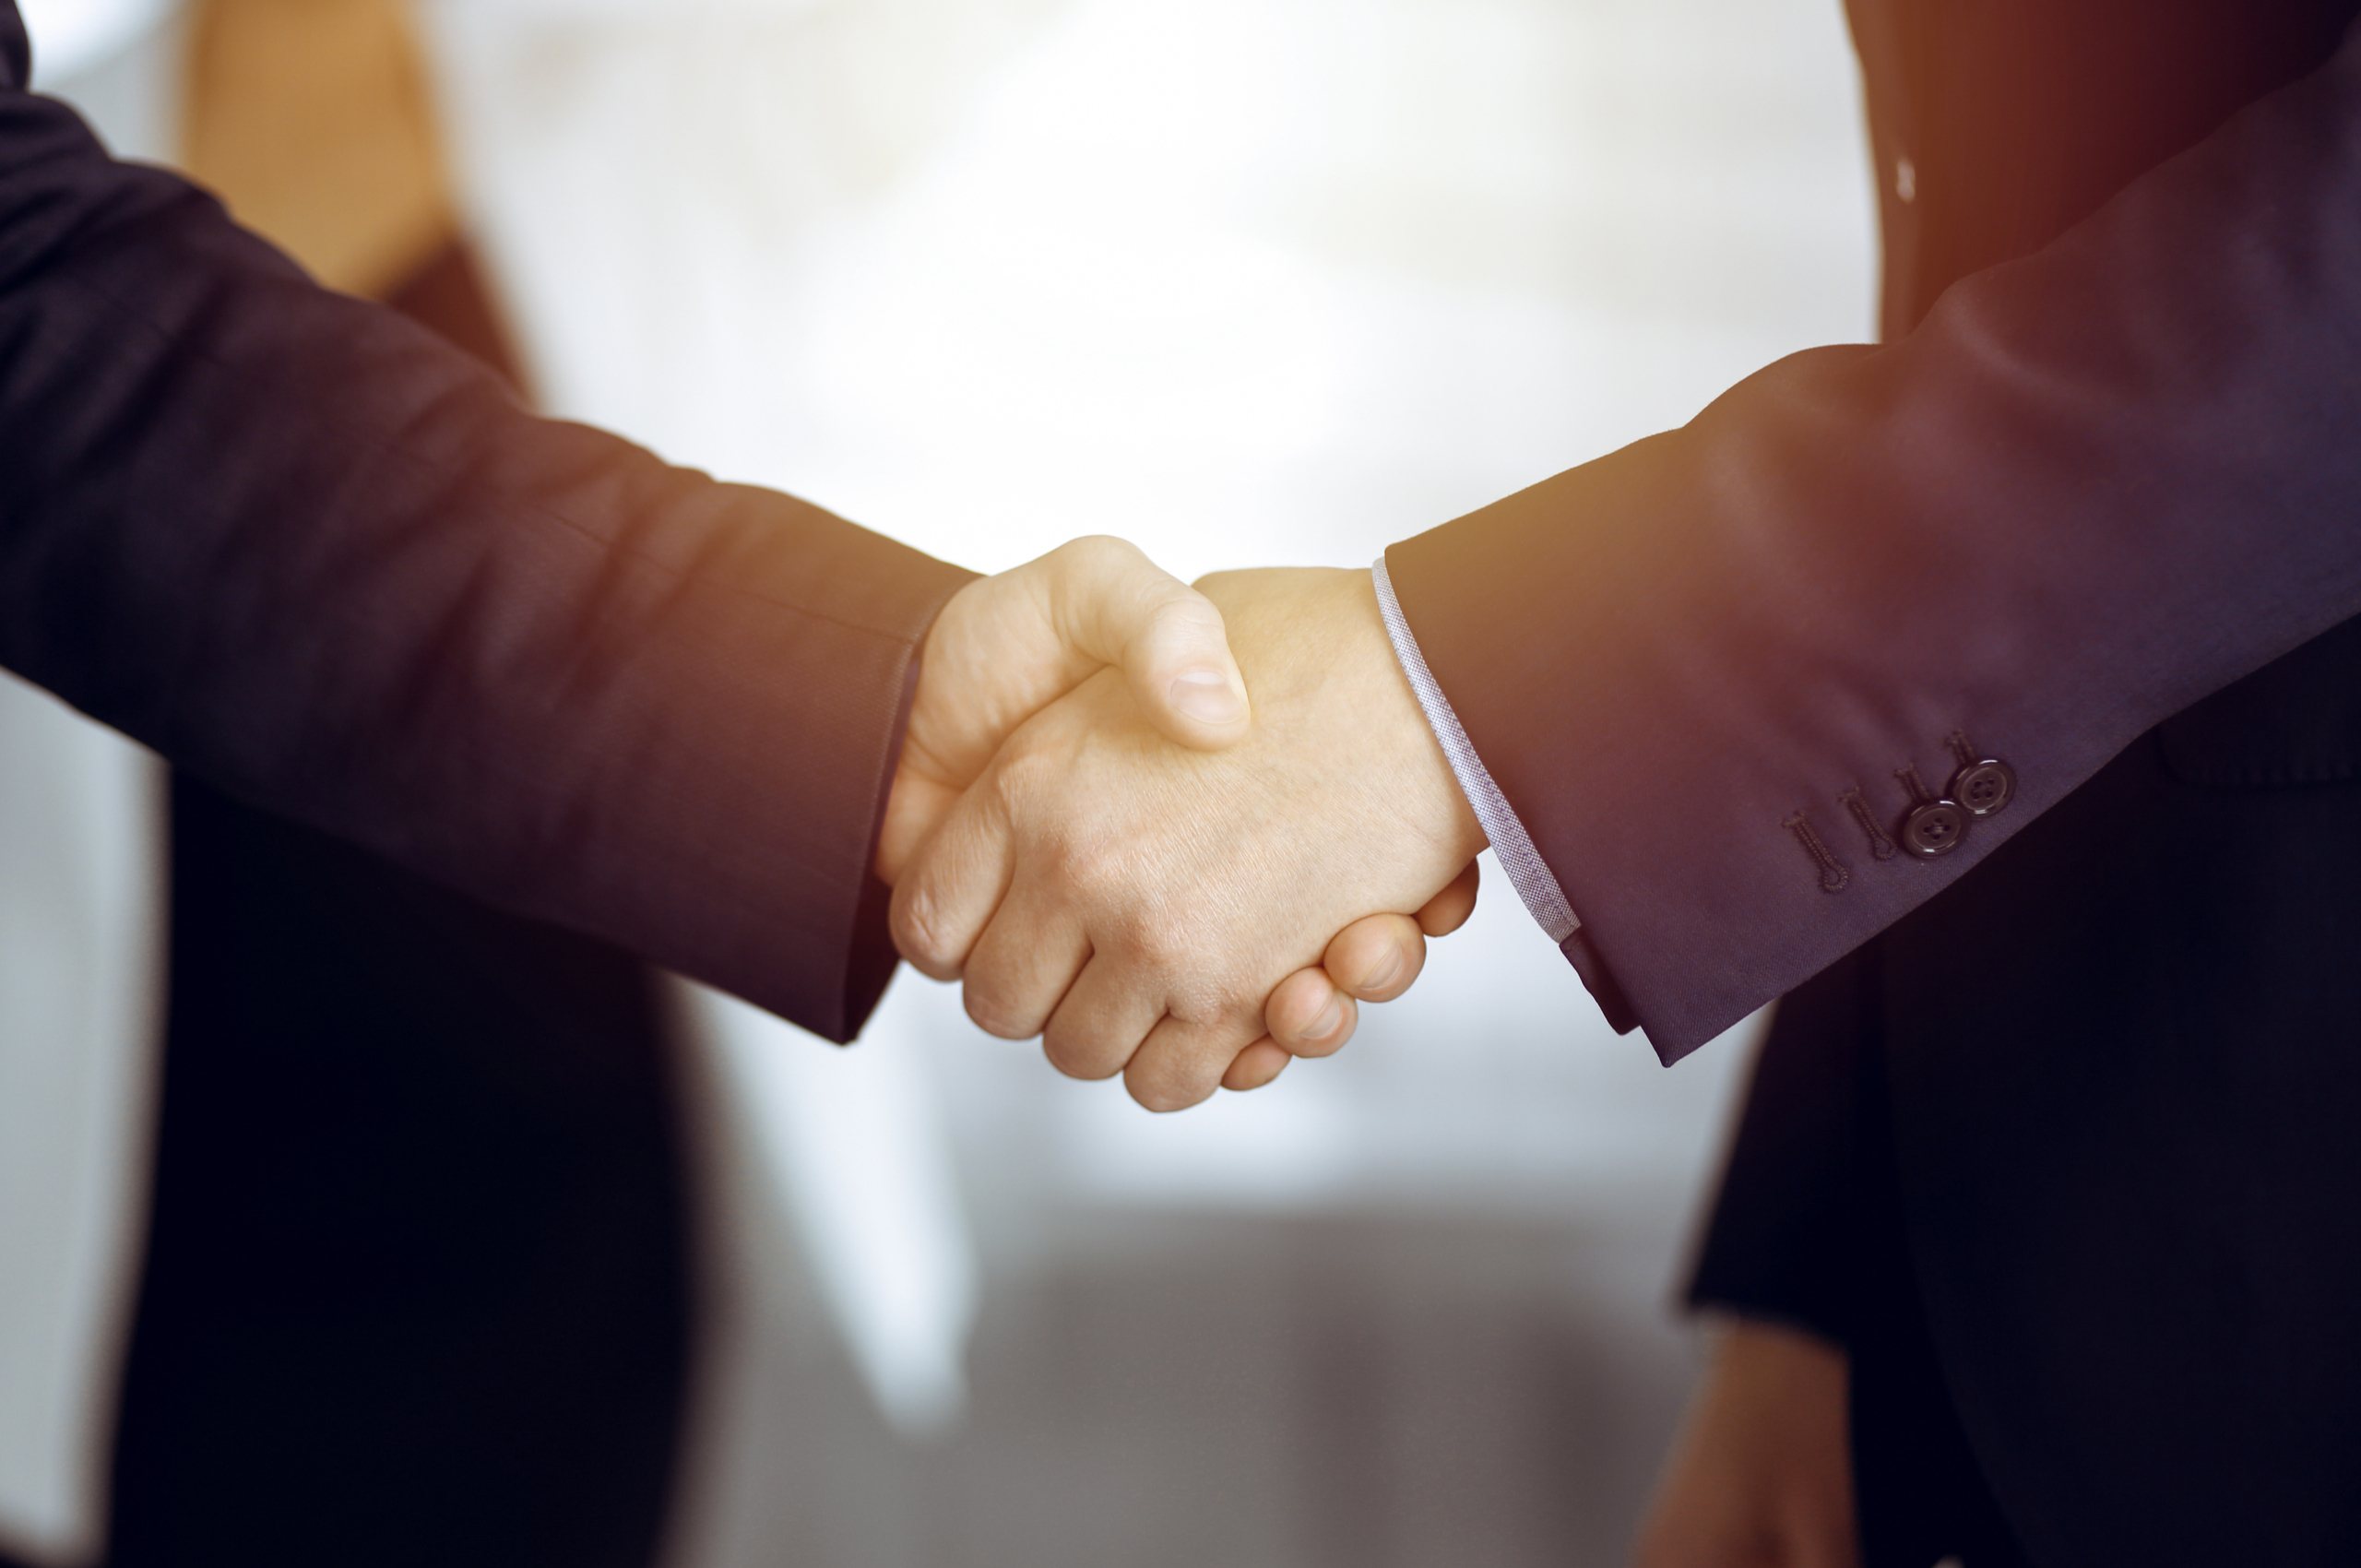 close up of a handshake by two people wearing suits